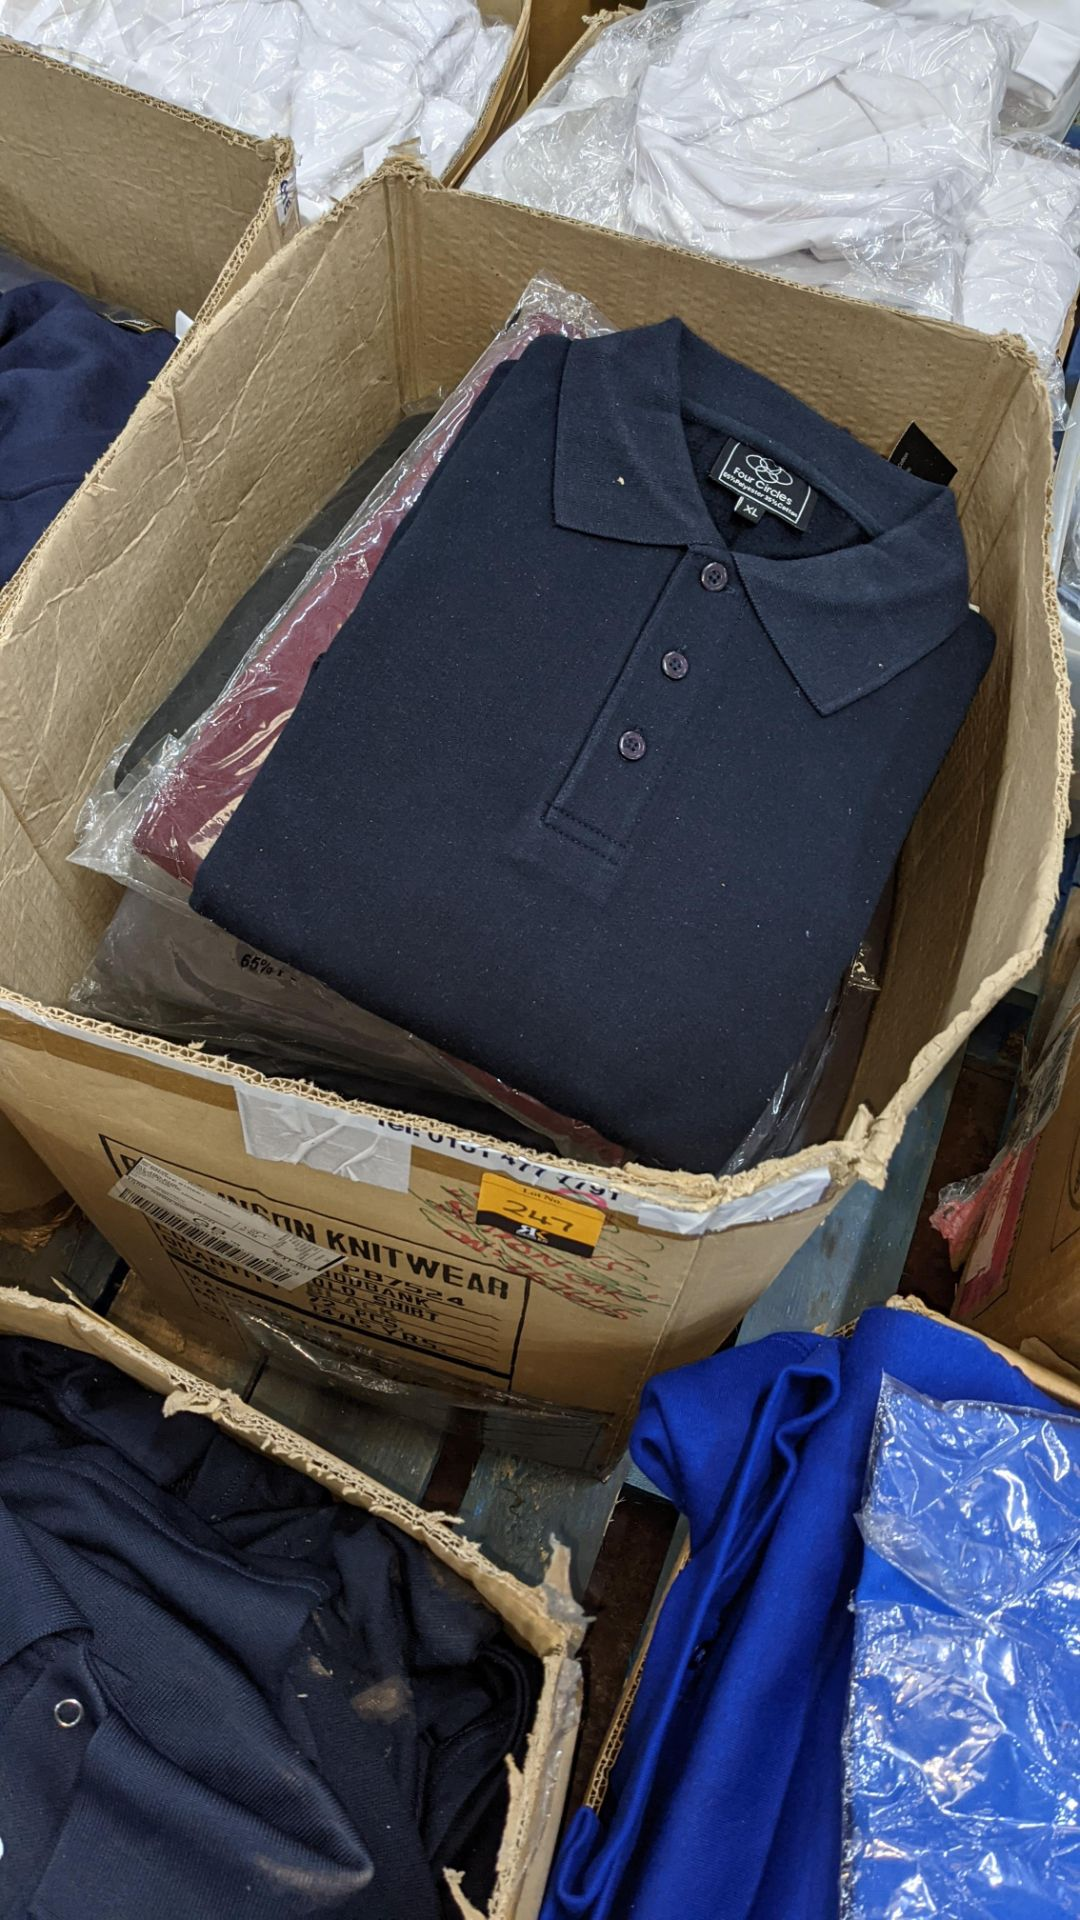 Approx 17 off assorted polo shirts by Four Circles in blue, burgundy & grey - 1 large box - Image 2 of 5